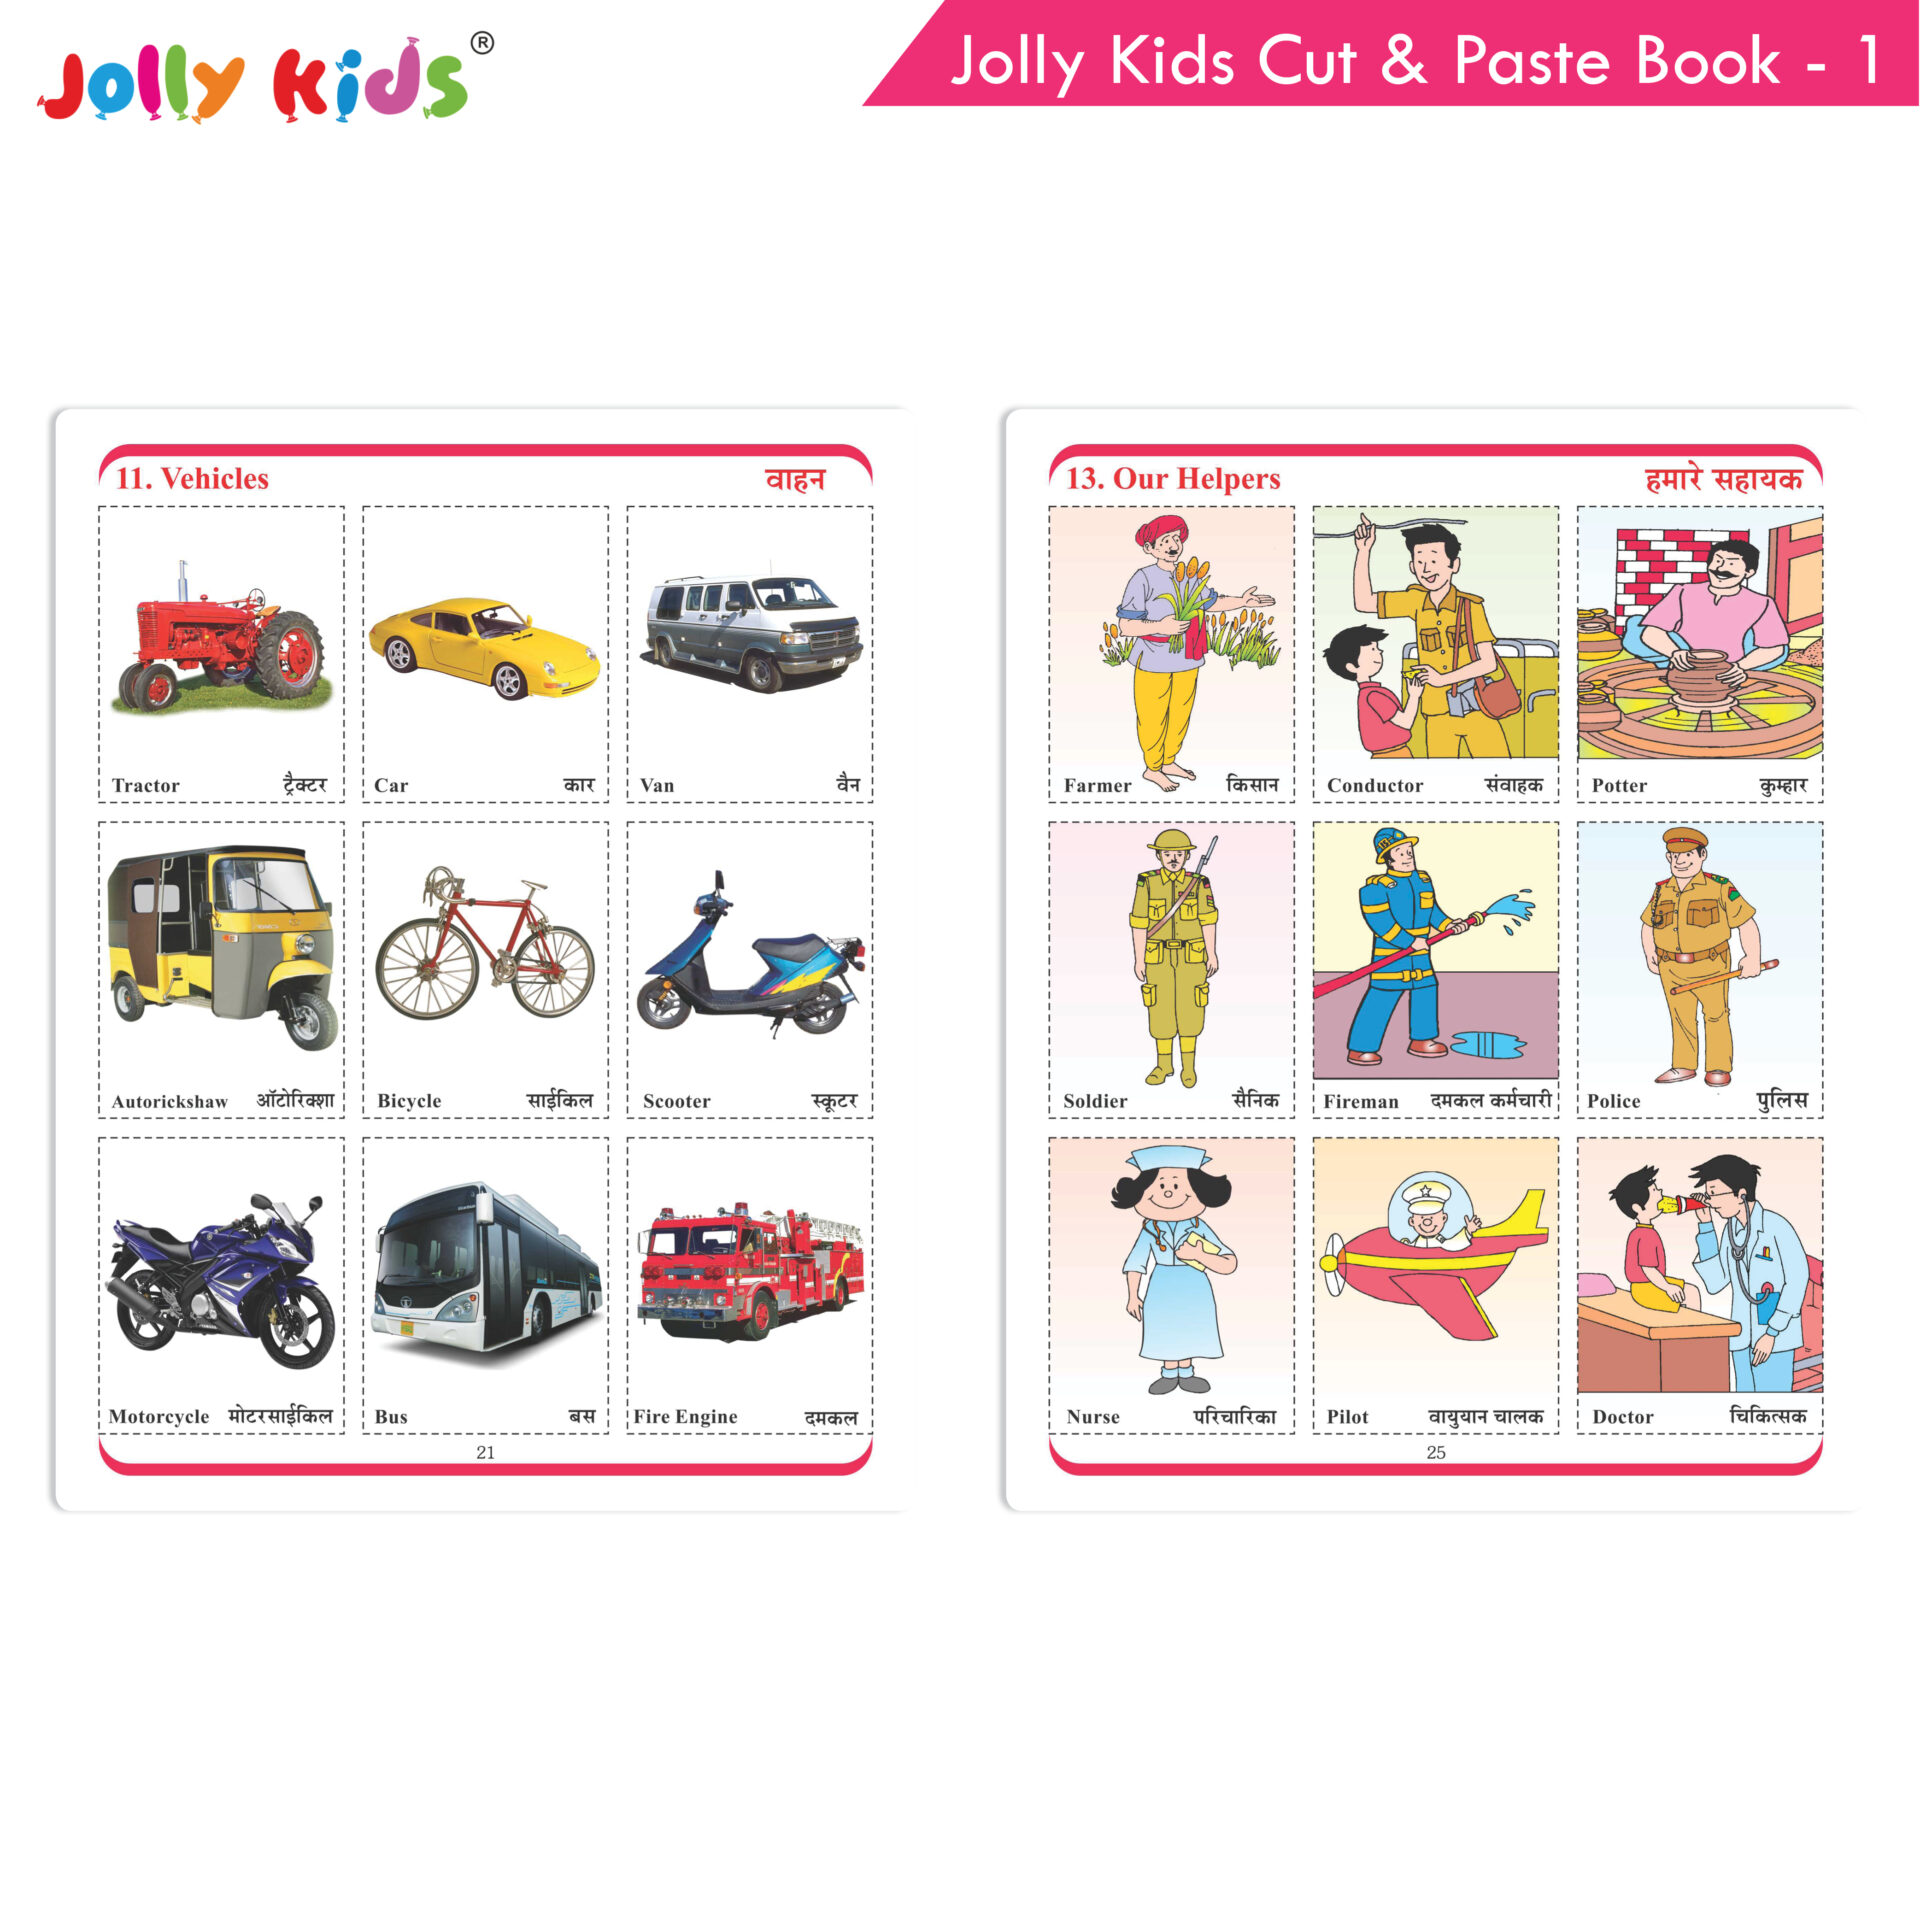 Jolly Kids Cut and Paste Book 1 8